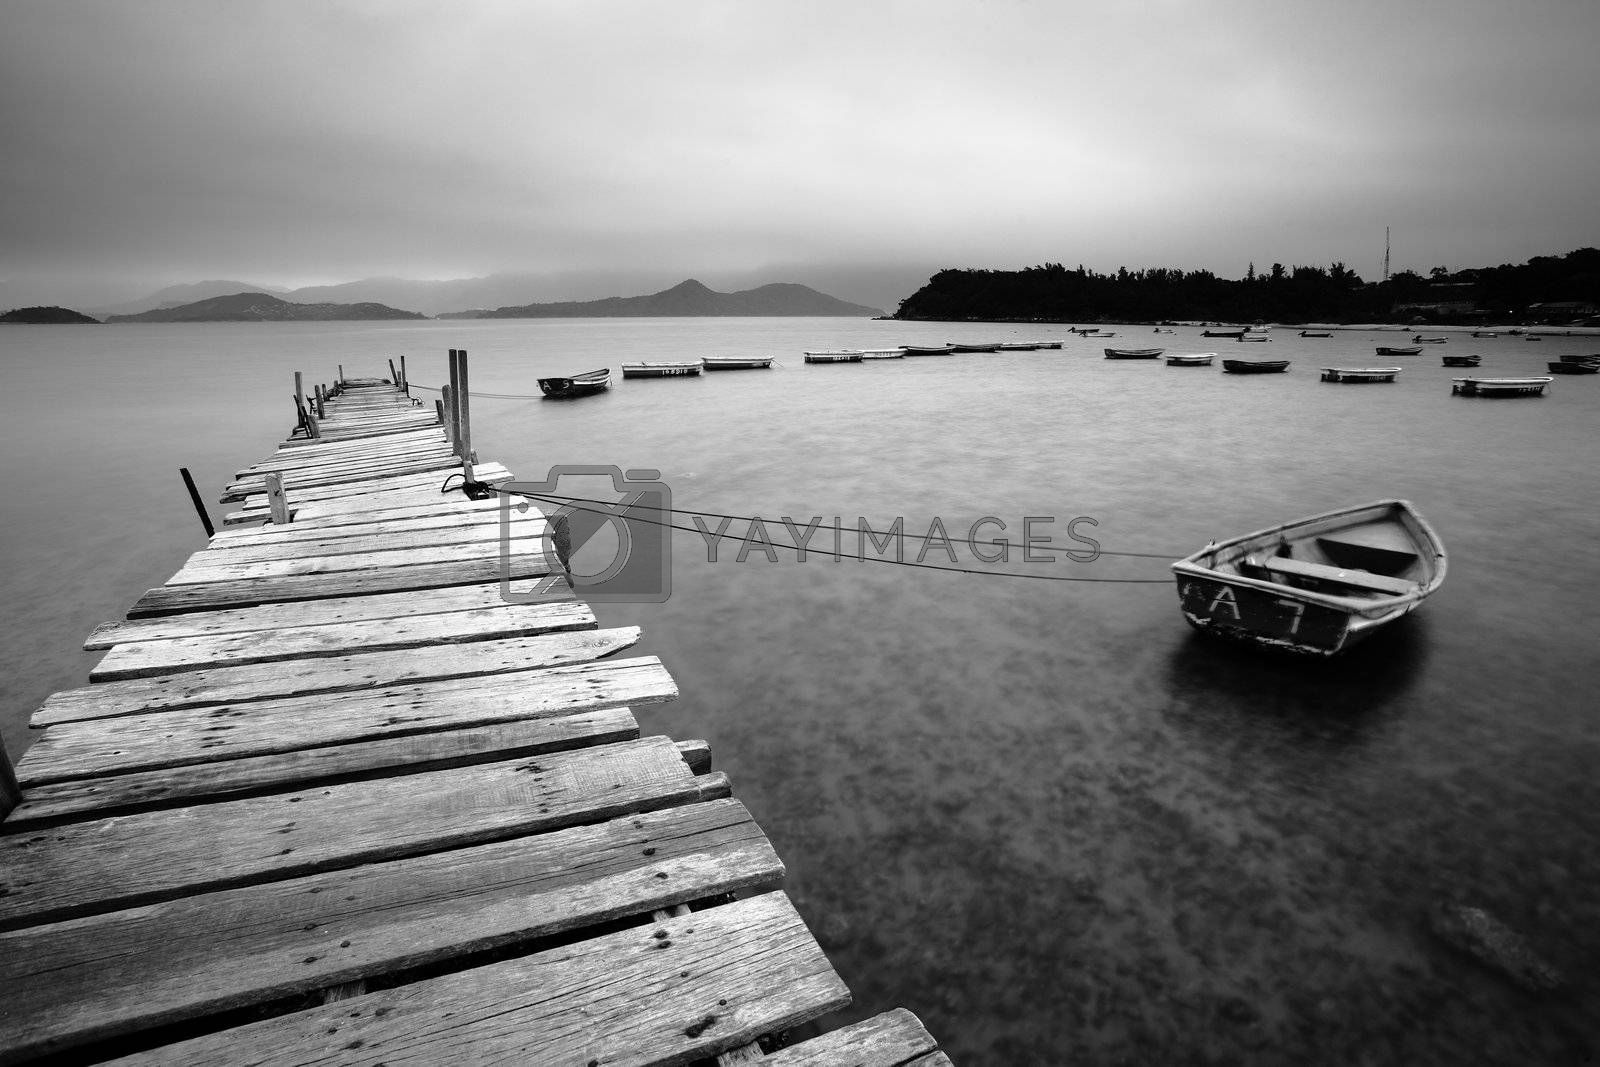 Royalty free image of wooden pier and boats by leungchopan